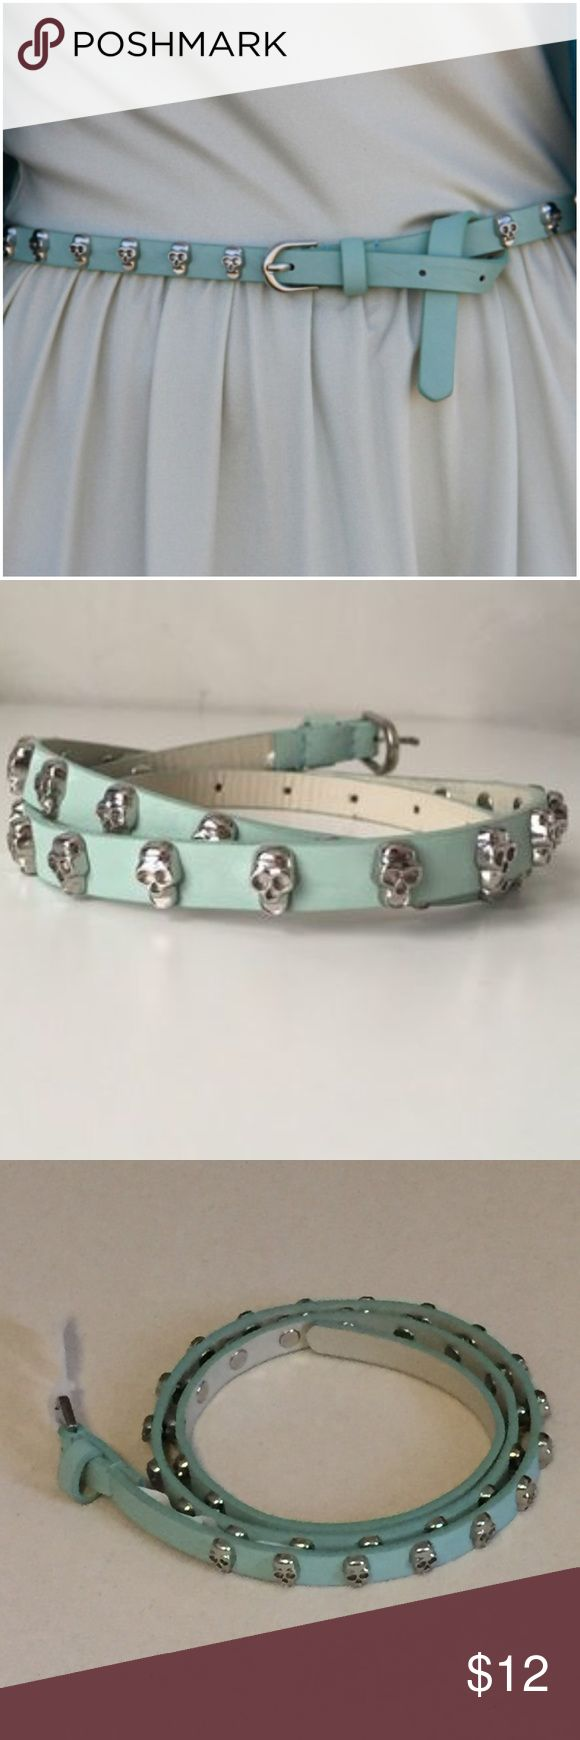 """NWT Mossimo Blue Belt w/ Silver Skulls XS, M, L Seafoam Green Mossimo Belt W/ Silver Skulls --- Available in XS, Small & Large --- size large belt has circumference of 34"""" -  39"""" --- Man made materials  PU ---  thank you for visiting my boutique, please feel free to ask any questions  Mossimo Accessories Belts"""